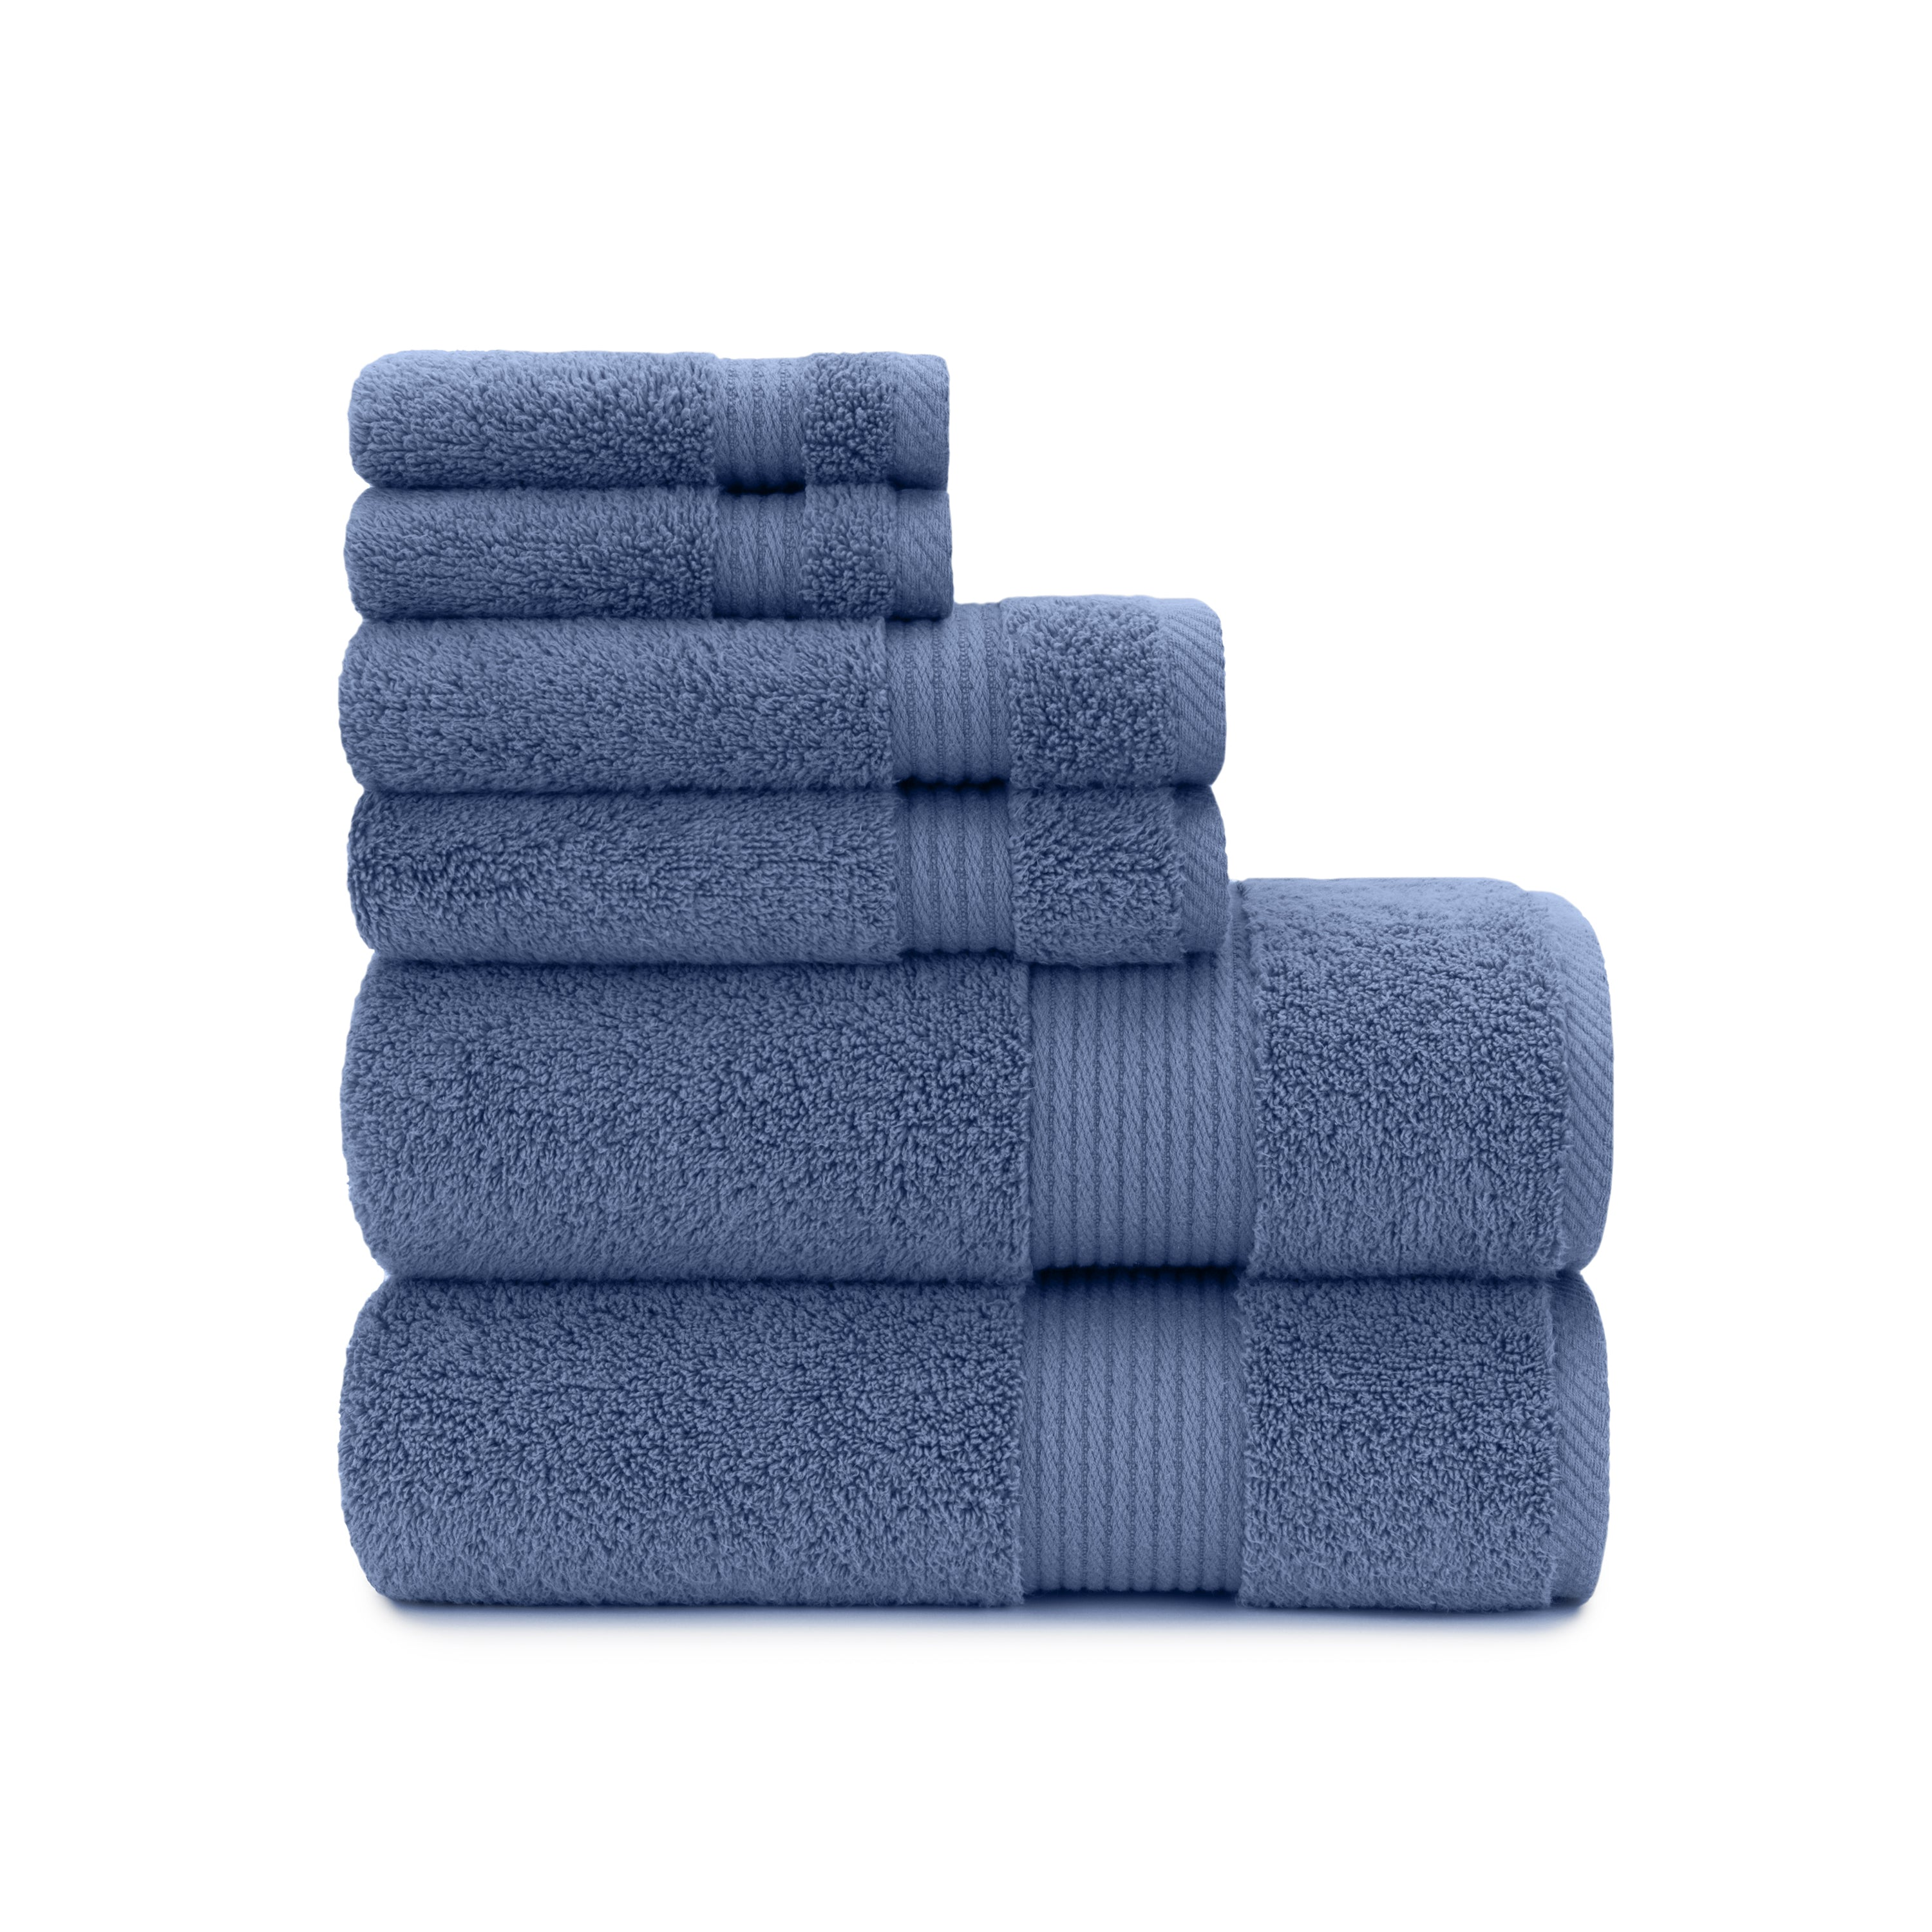 Splendidly Soft, Spa Towel Set, Superior Quality Hand Towels in CA ...